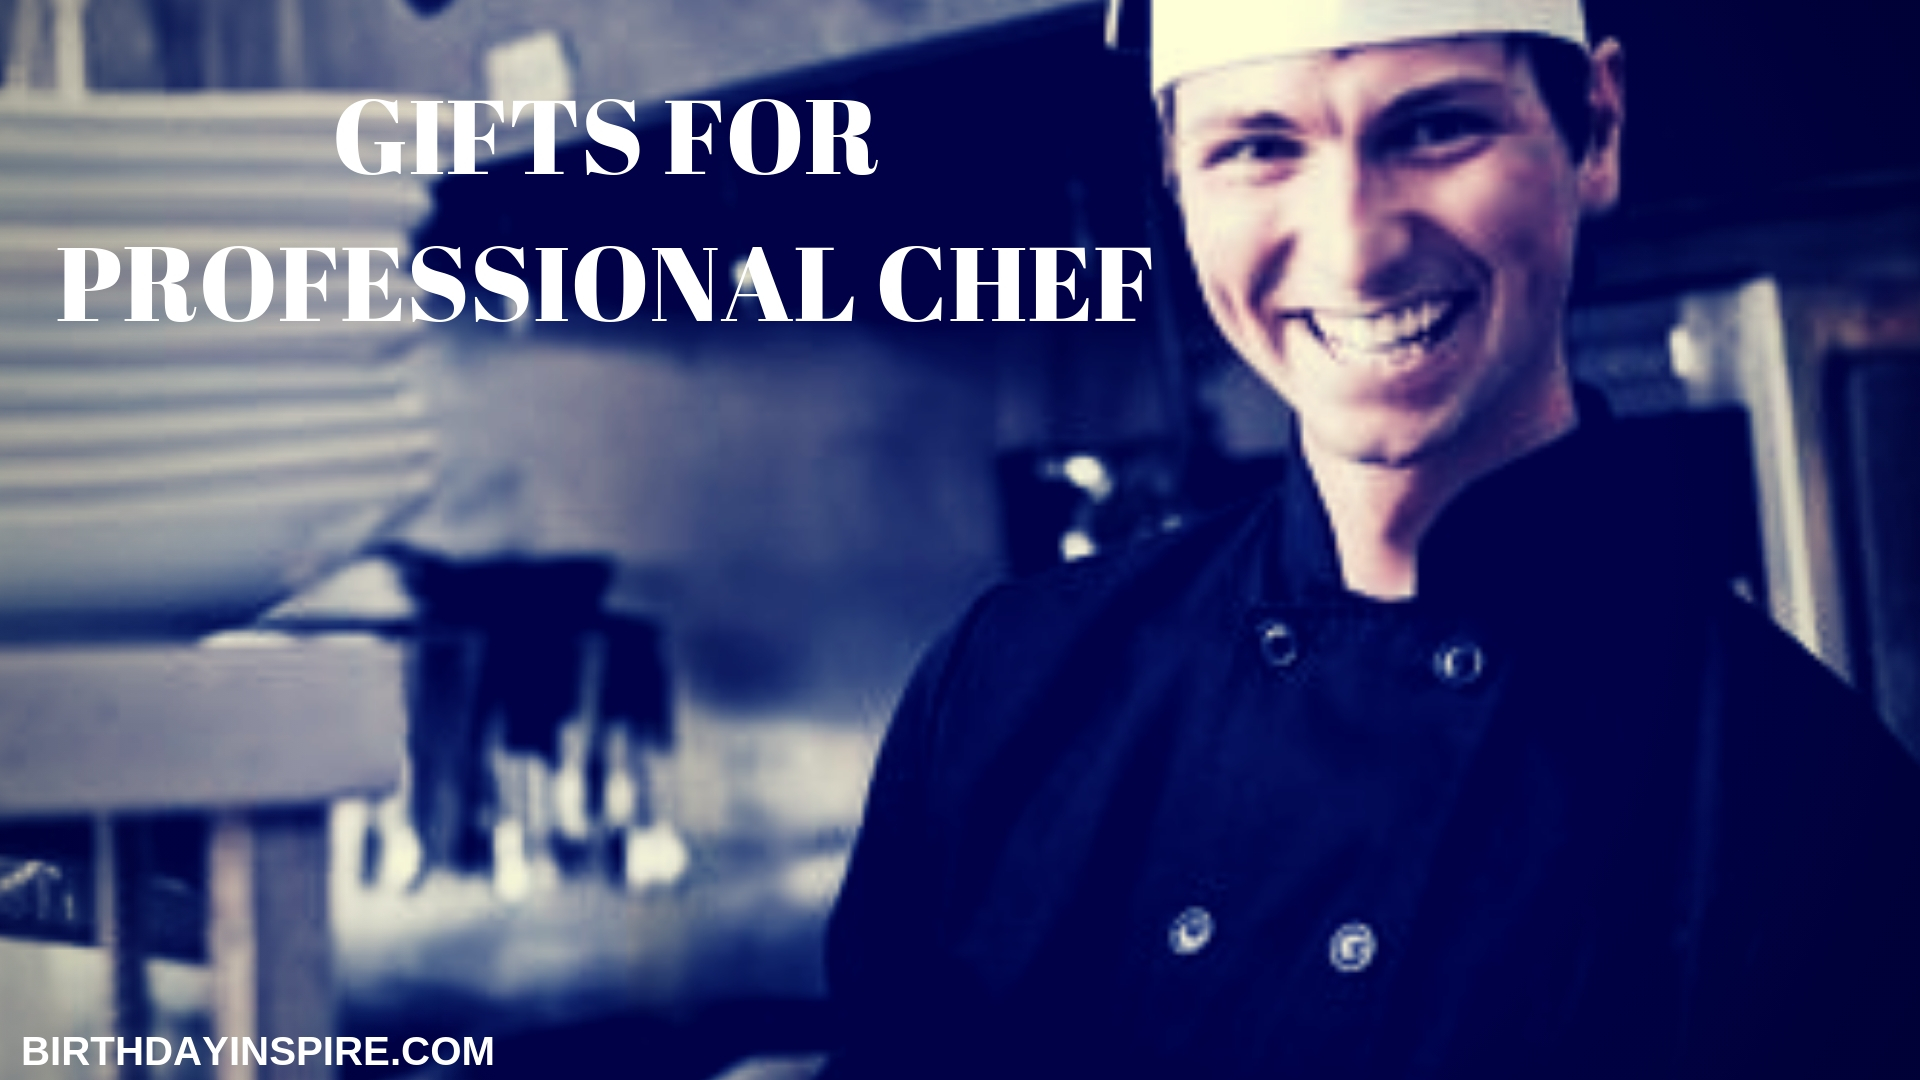 GIFTS FOR PROFESSIONAL CHEF